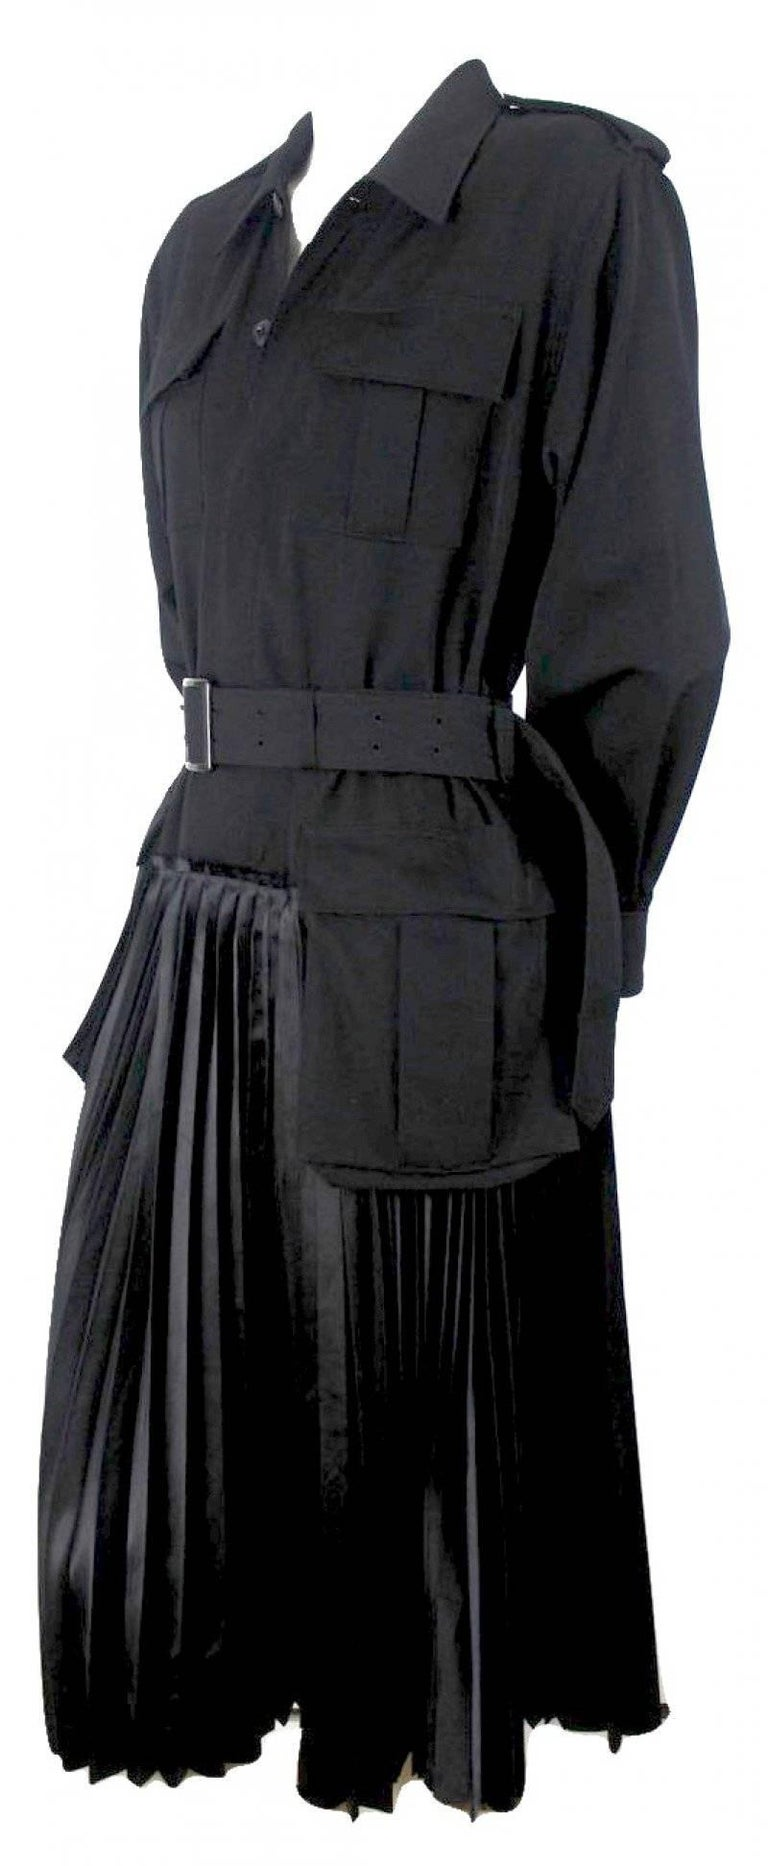 Junya Watanabe 2006 Collection Military Dress For Sale 4